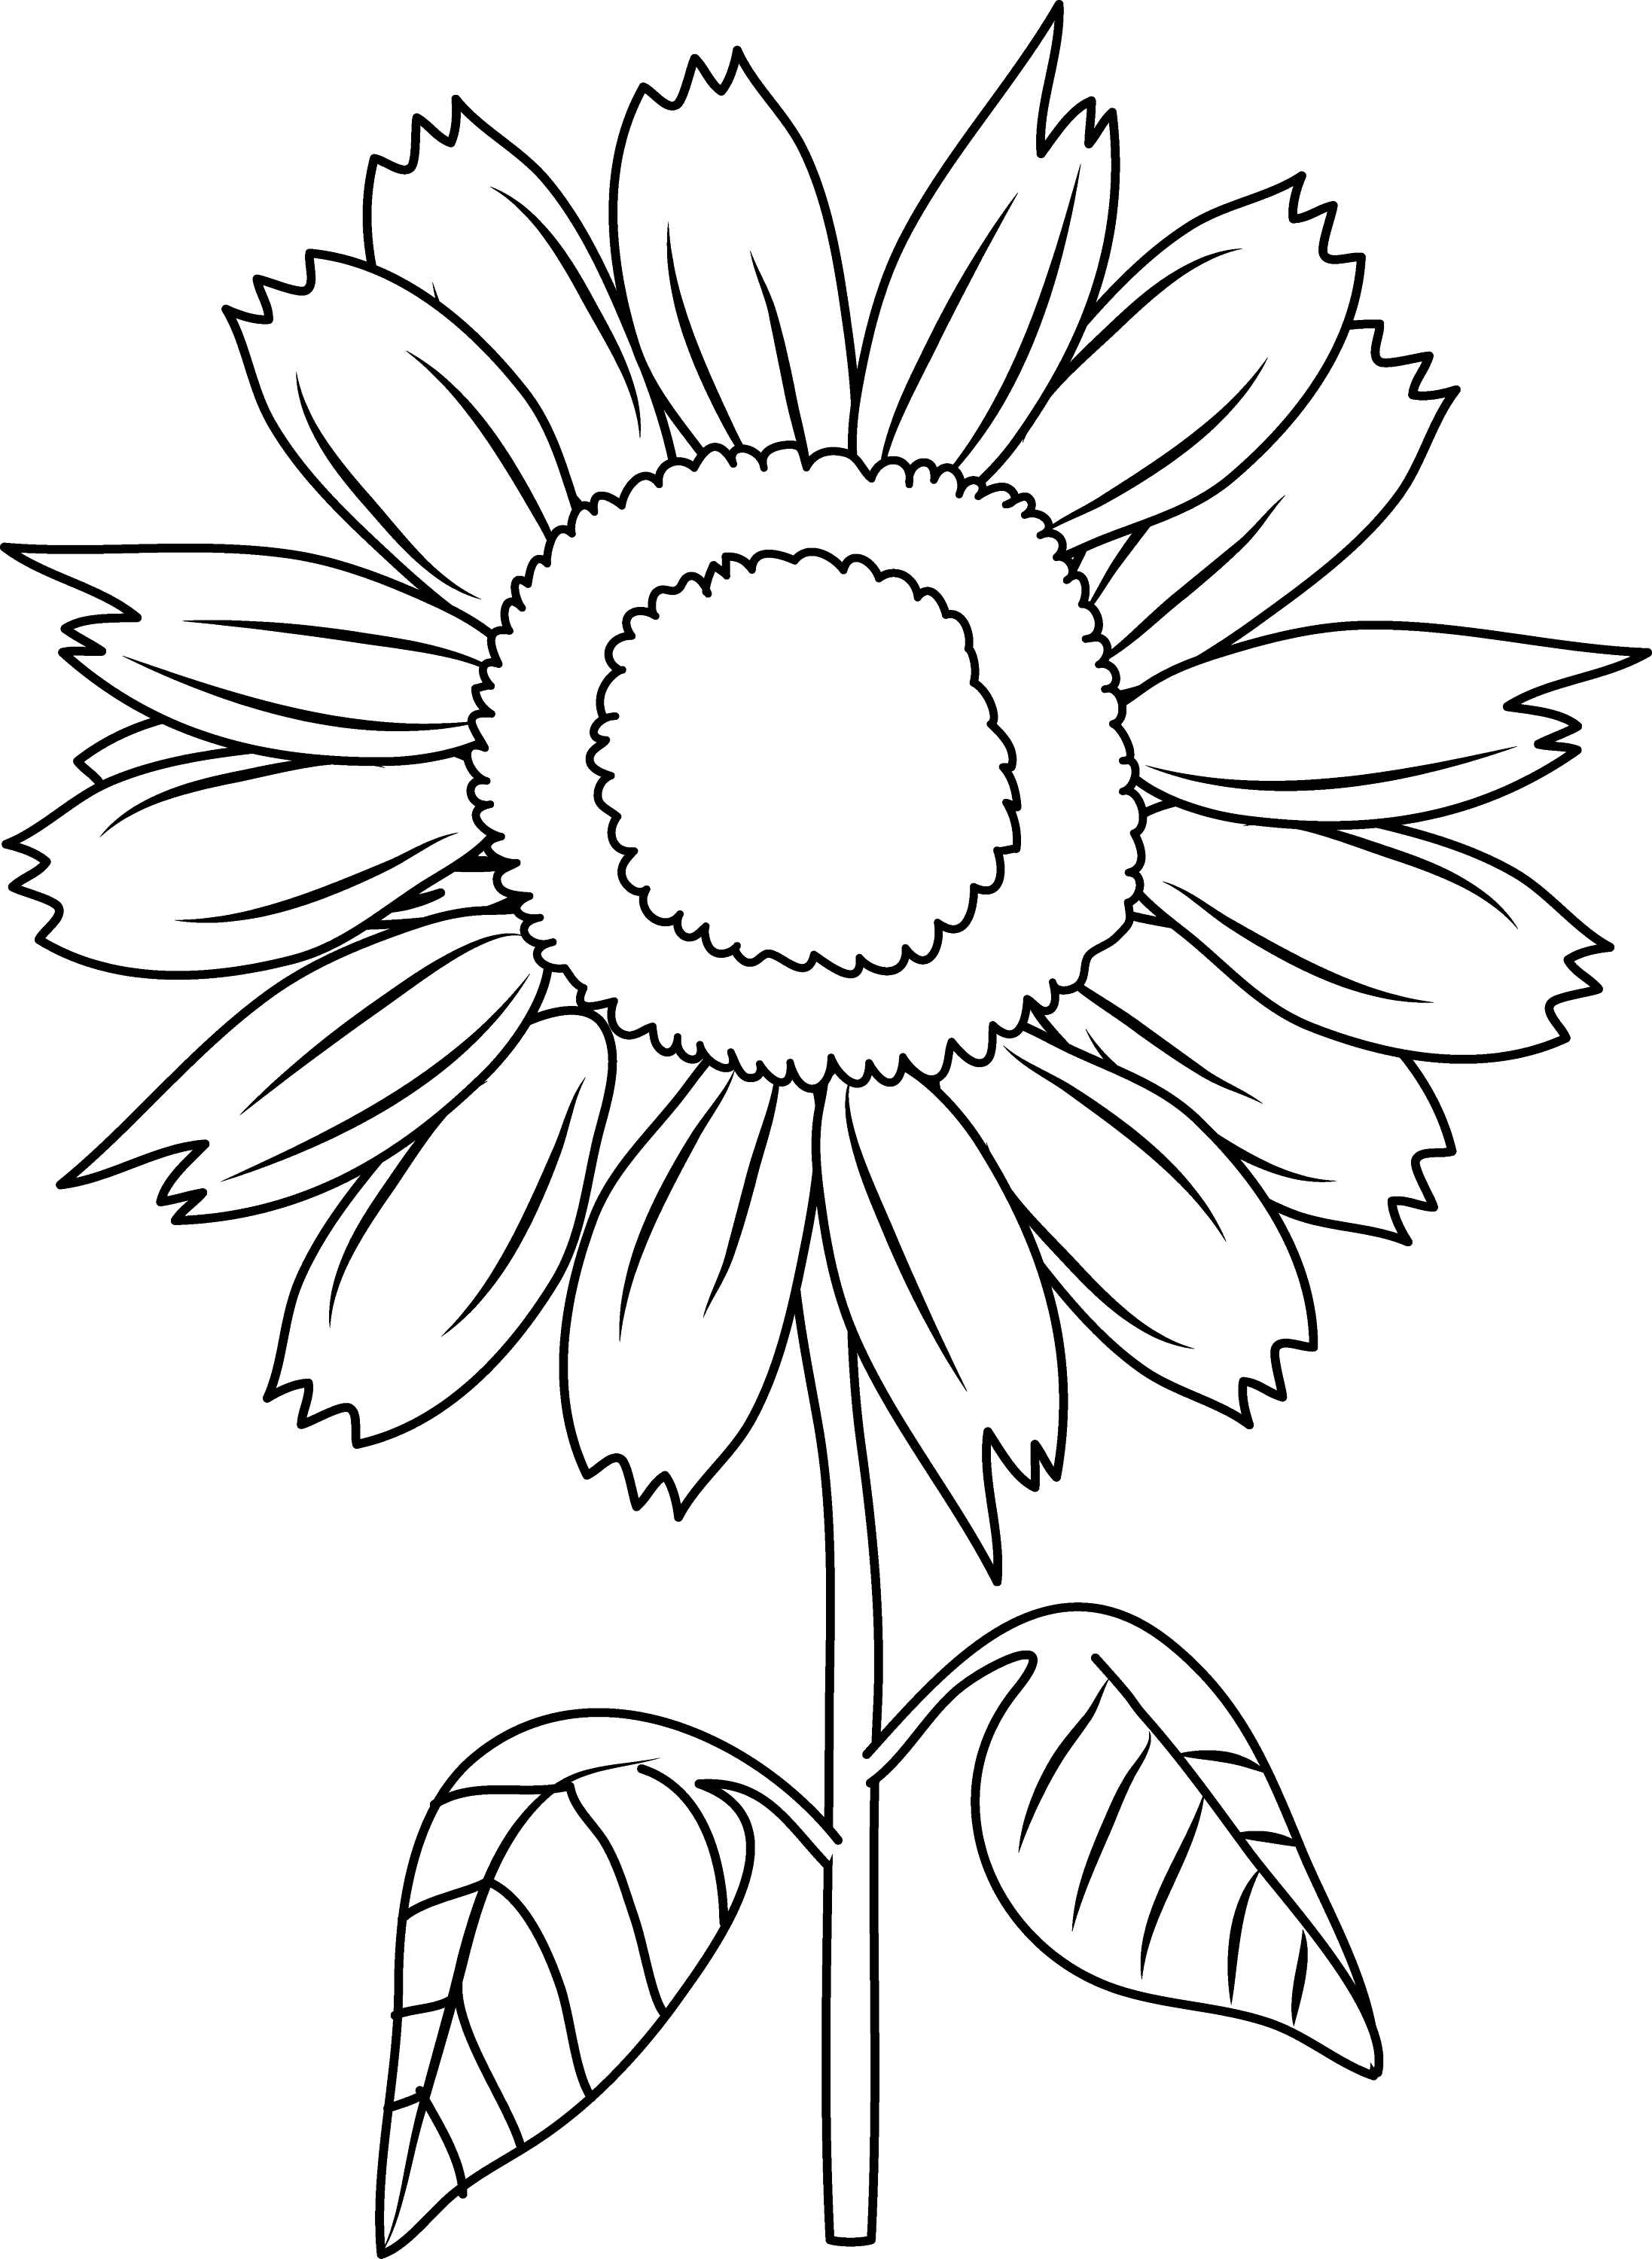 free black and white clip art sunflowers - photo #15